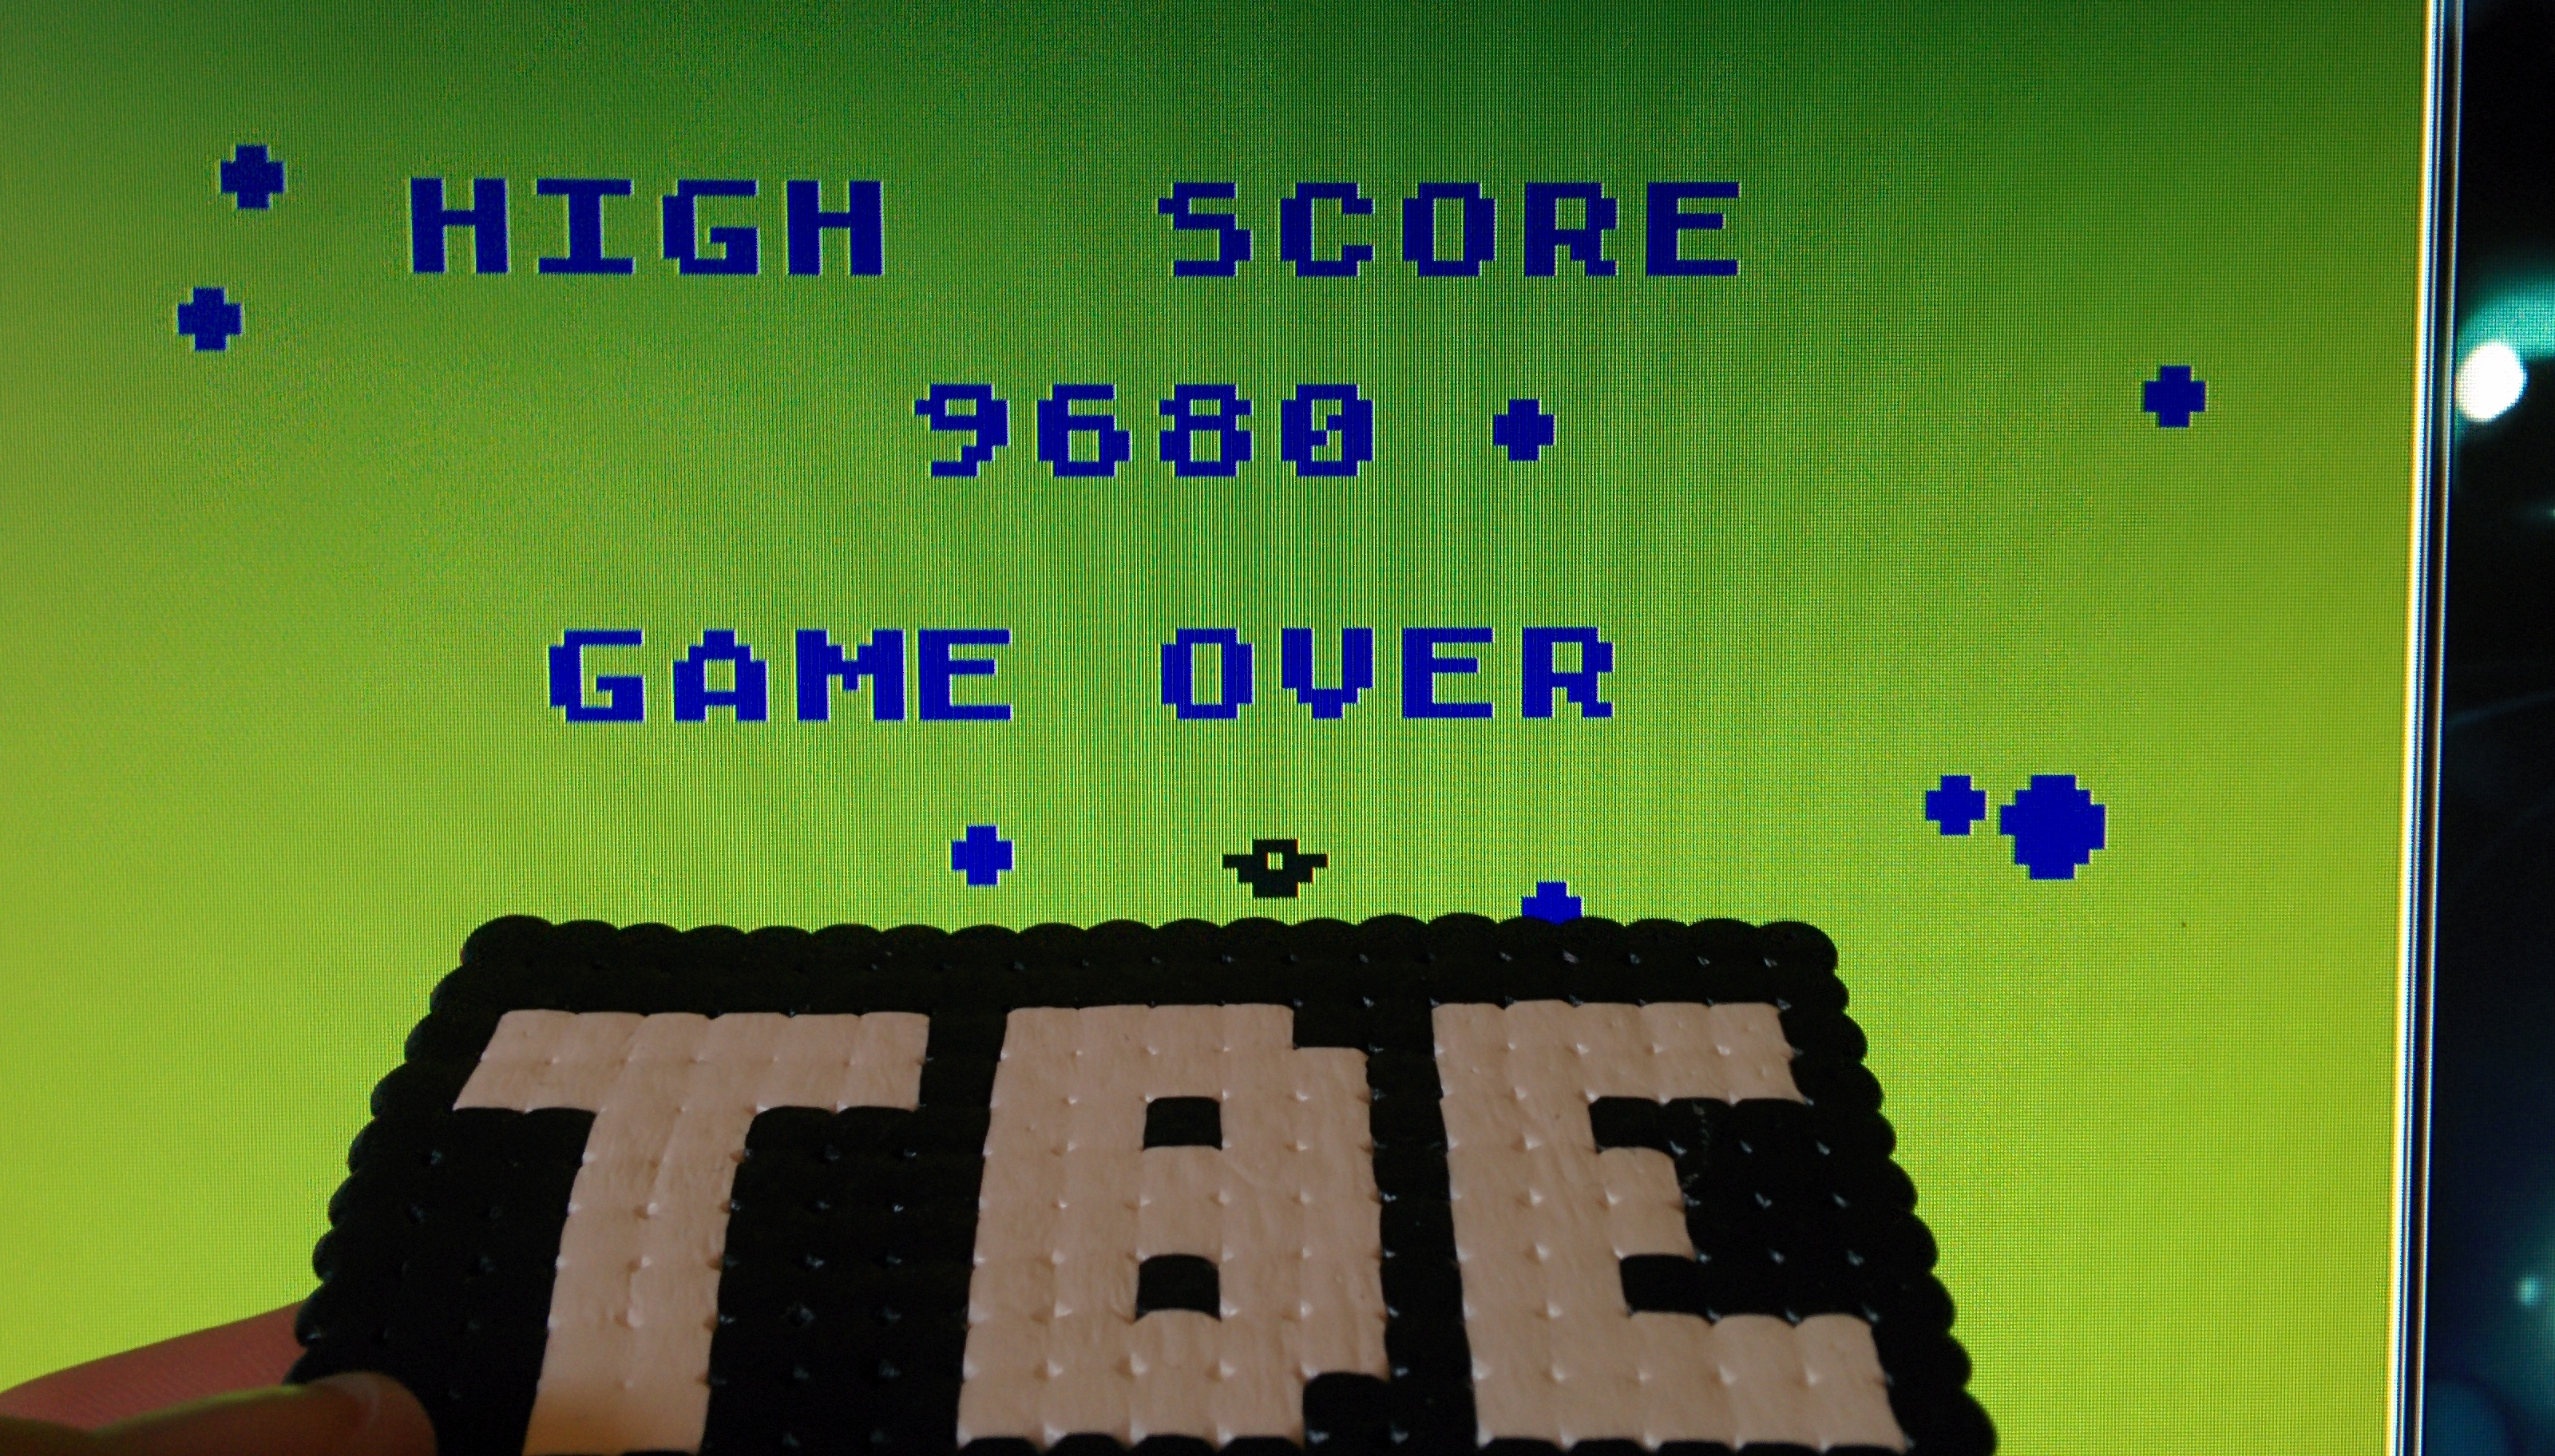 Sixx: Asteroids: Fast/Hyperspace/Bounce (Atari 400/800/XL/XE Emulated) 9,680 points on 2014-10-24 09:04:11